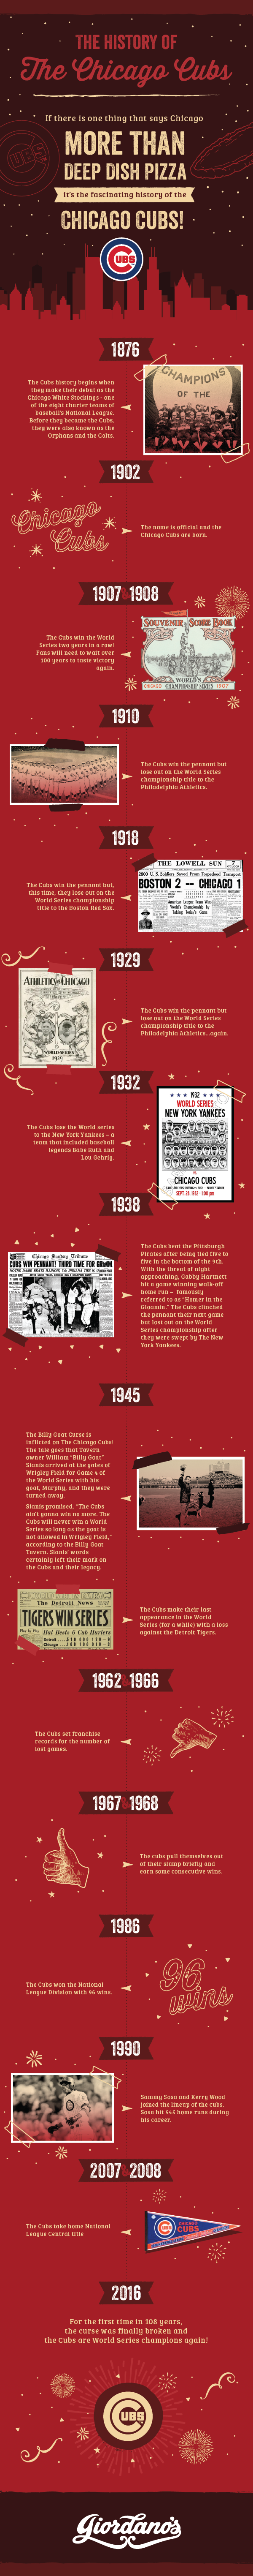 history of chicago cubs - a timline